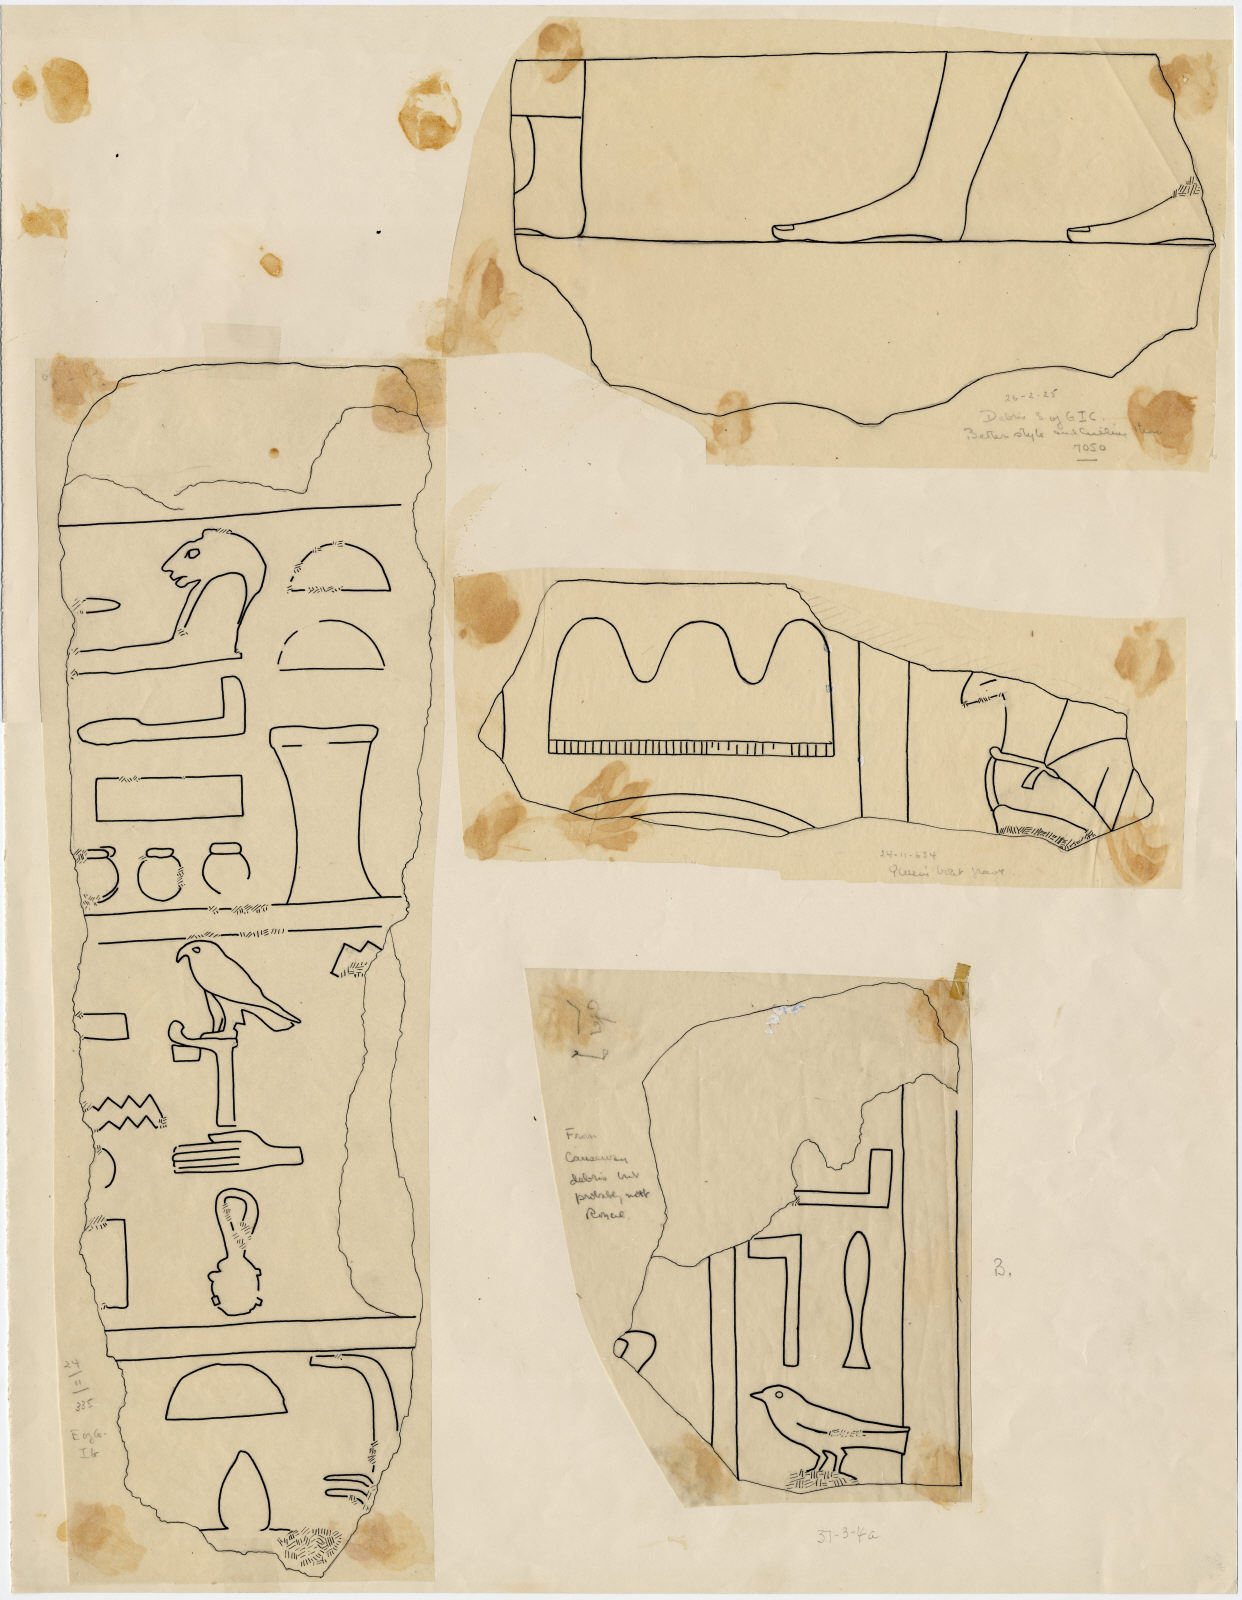 Drawings: Fragments of relief from Avenue 4, G I-a, G I-b, G I-c